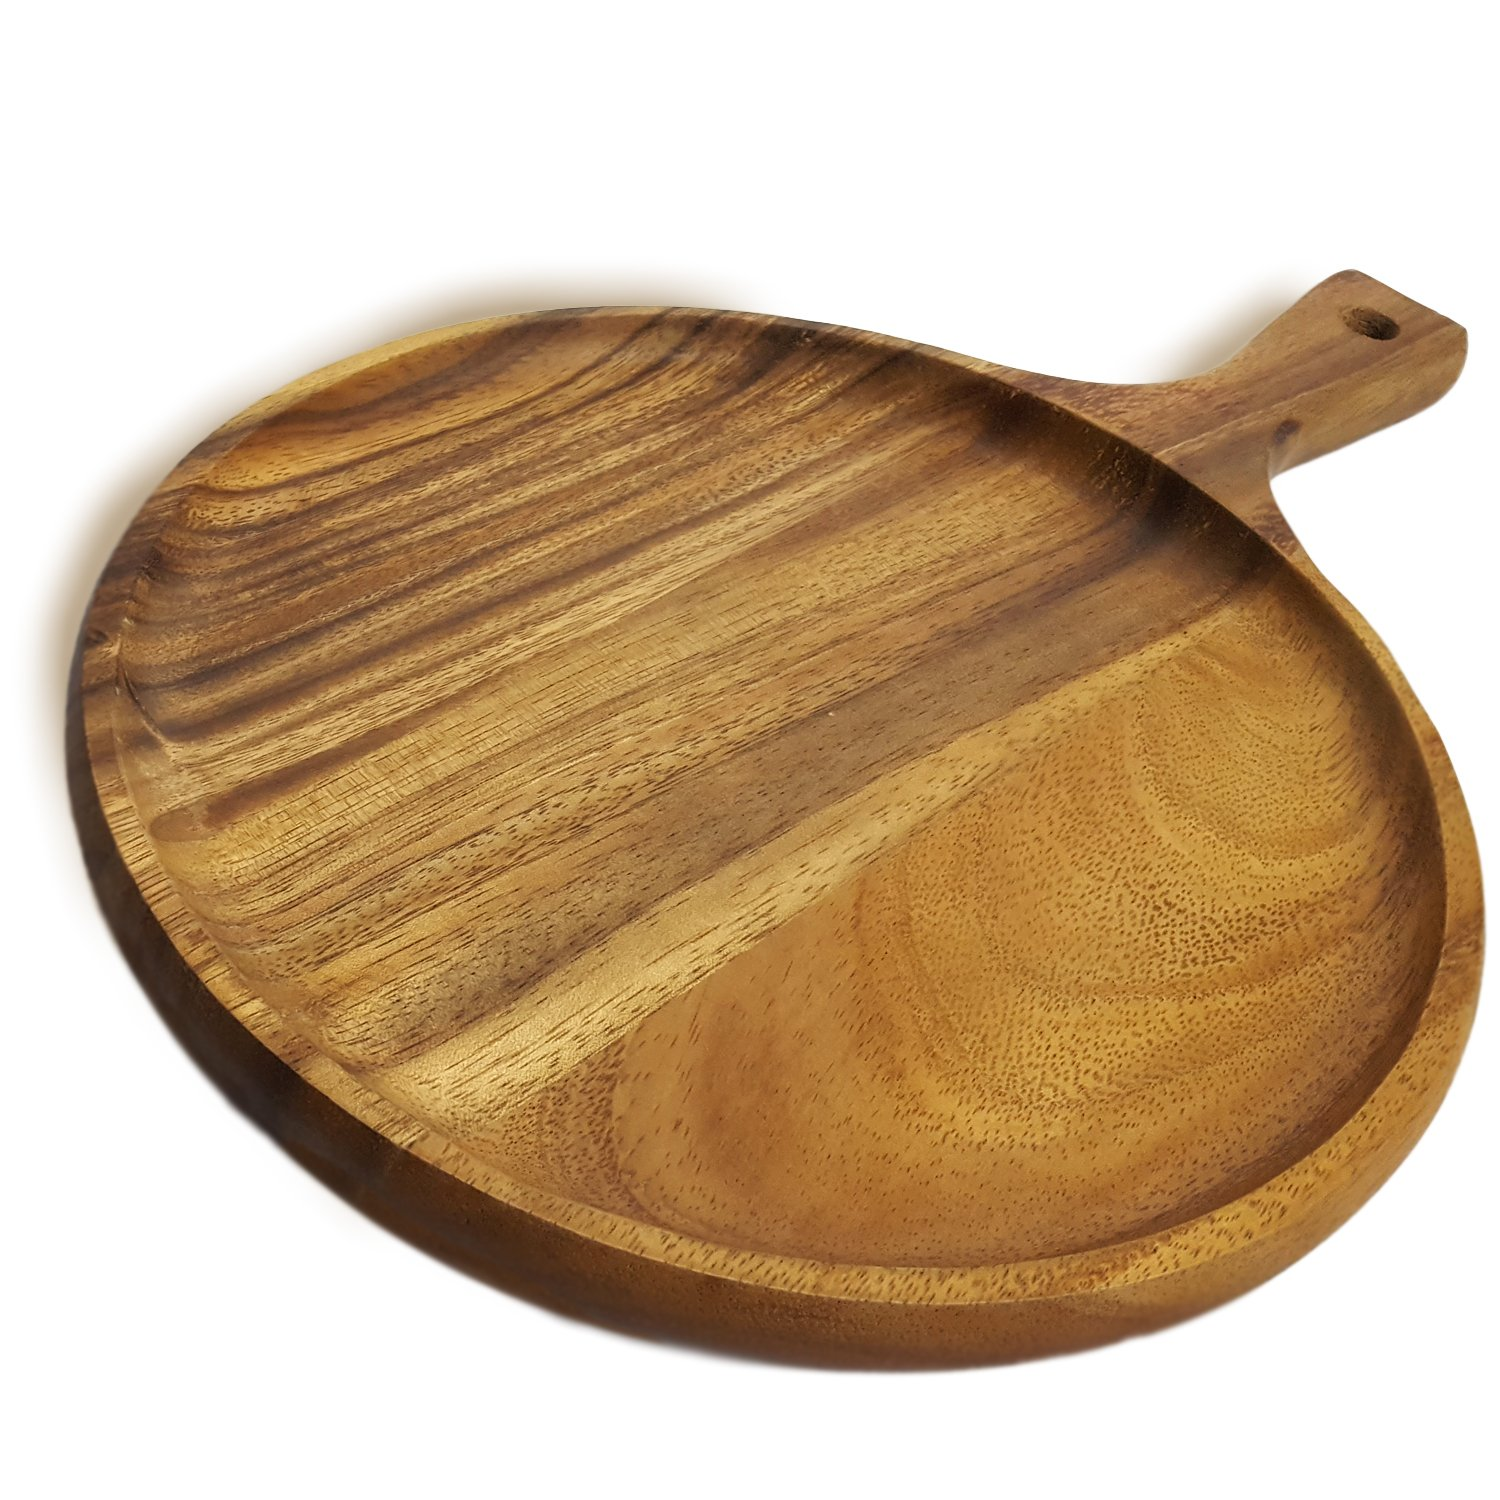 RoRo Acacia Wood Round Tray for Small Pizzas and Appetizers, 14 x 10 Inch Pankesum RRoPiz1001